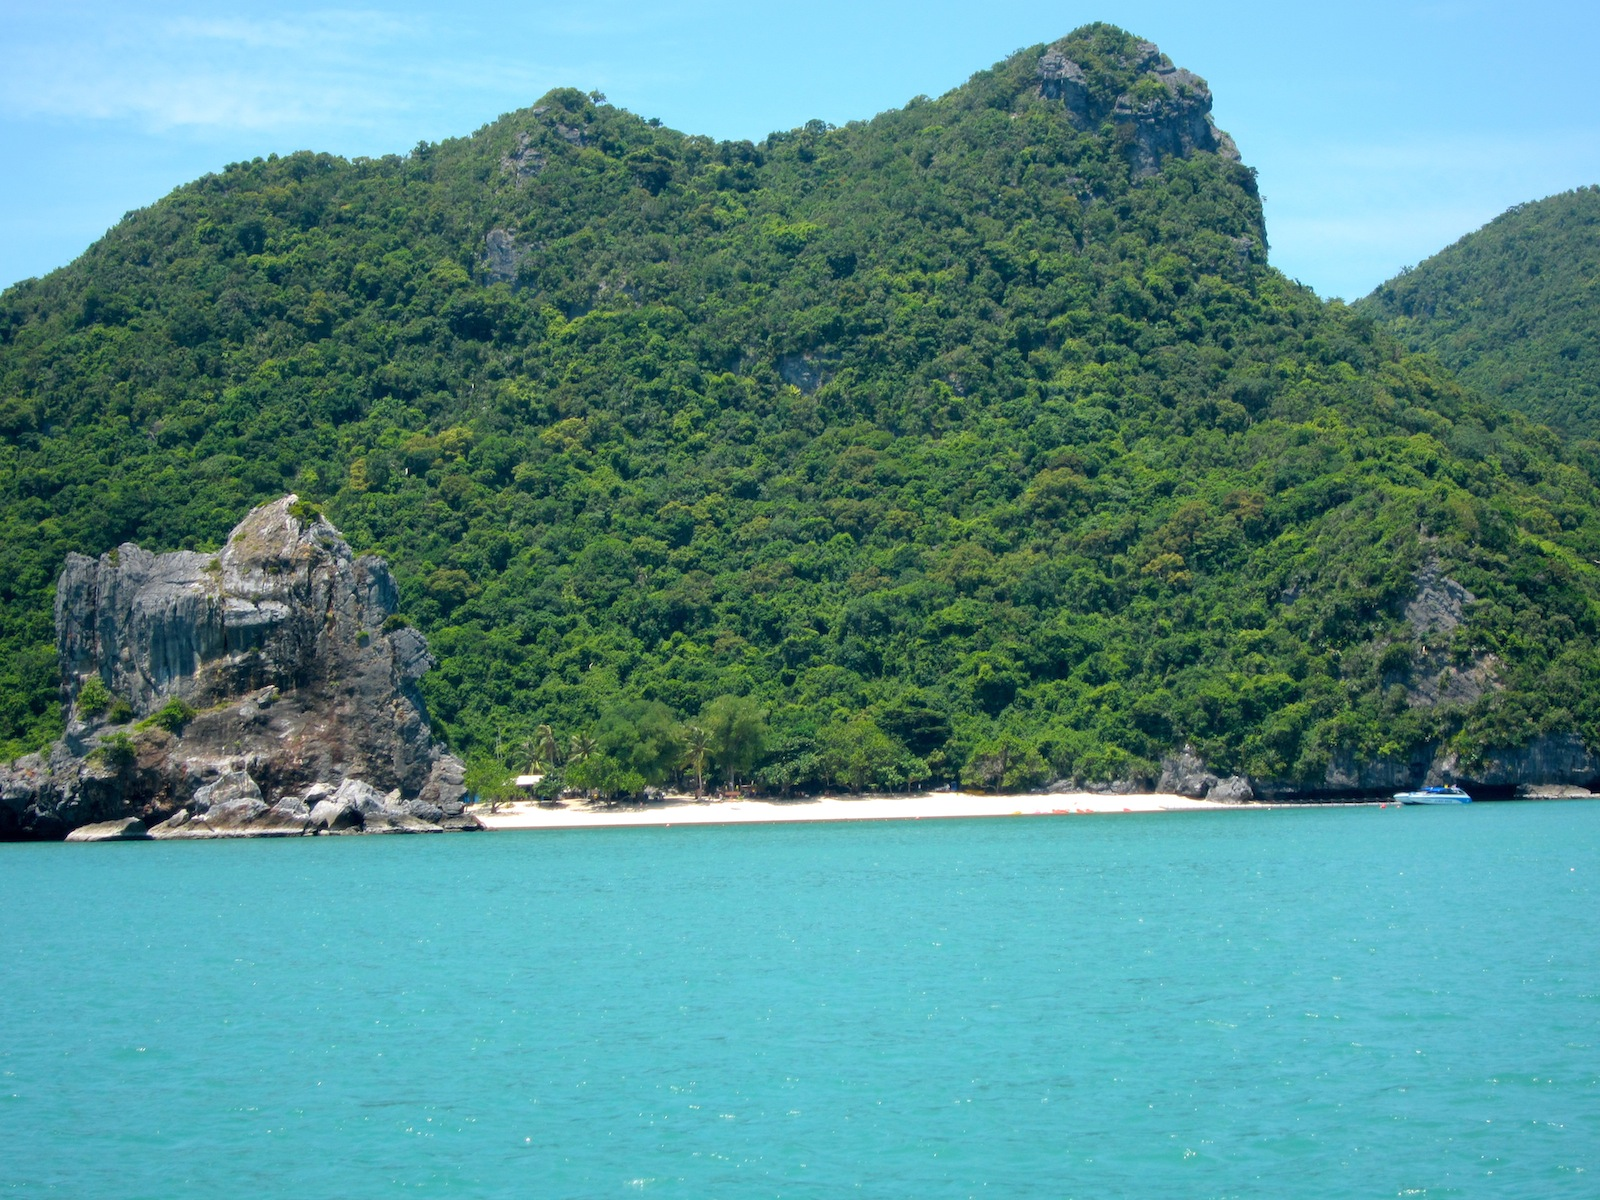 ... Tong Marine Park Koh Paluay The Beach travel blog yacht in thailand